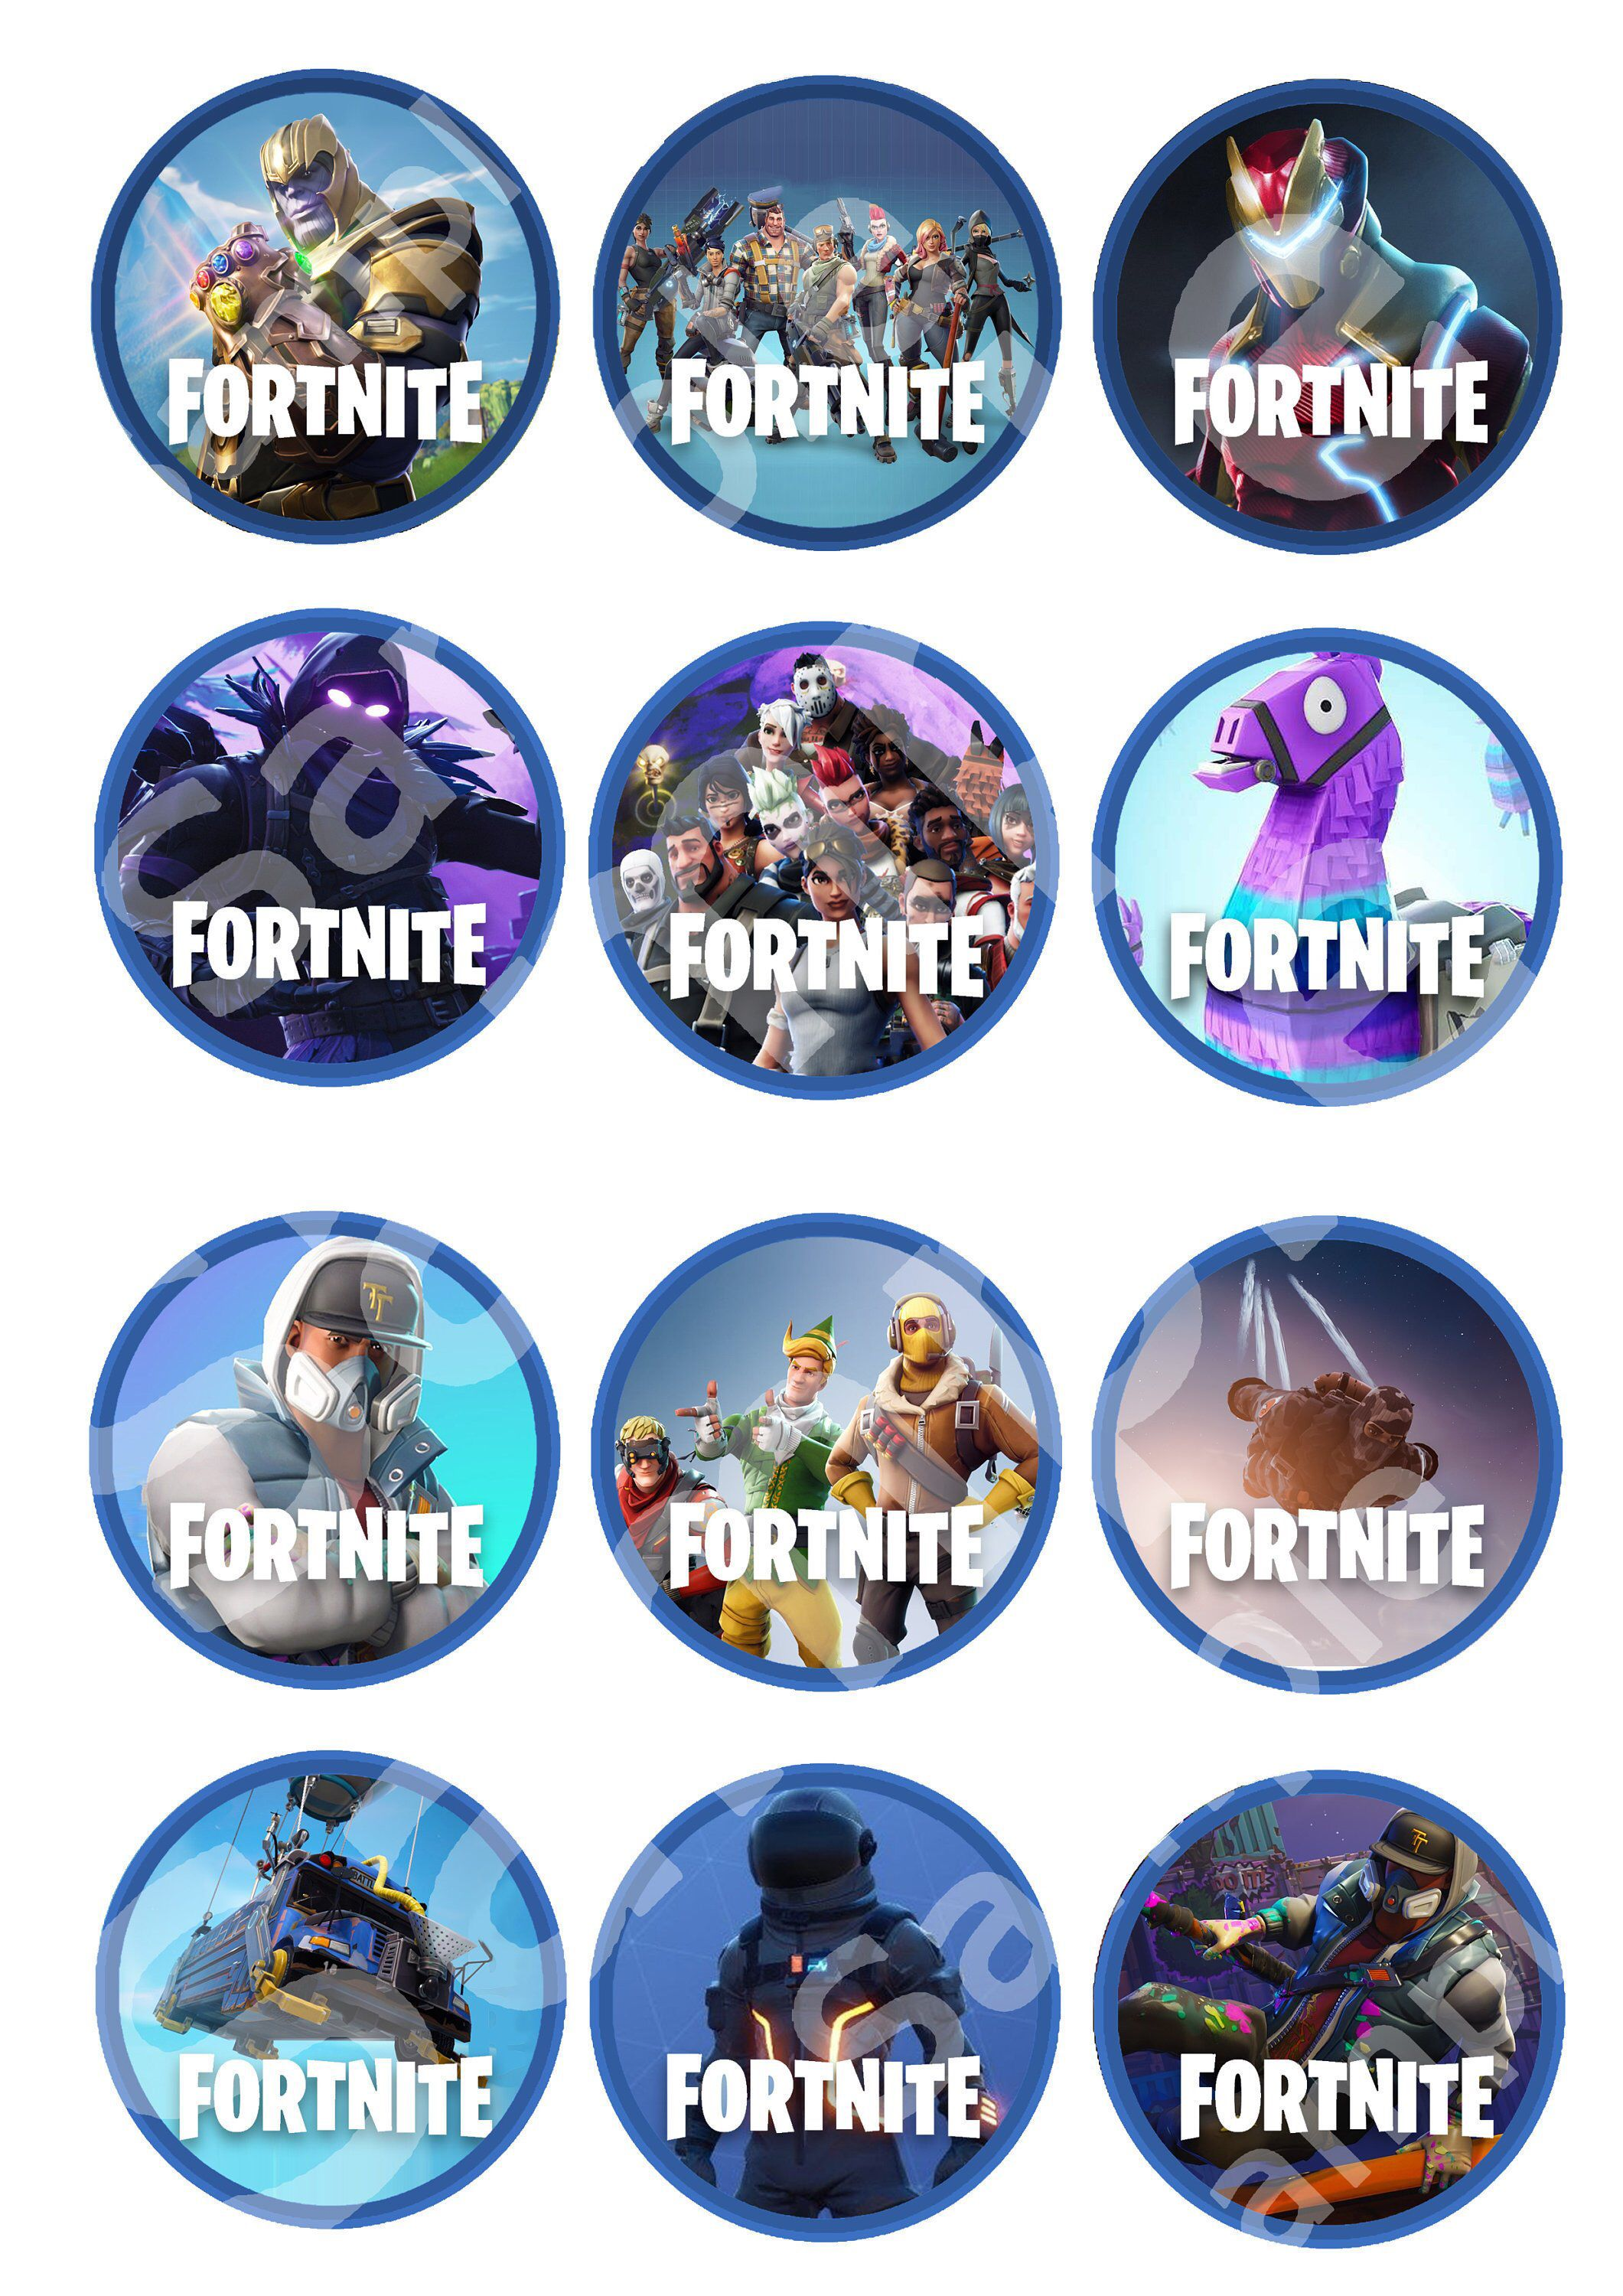 Excited to share the latest addition to my #etsy shop: Premium Fortnite Downloadable Ediable Cupcake Toppers #papergoods #blue #birthday #battleroyale #fortnite #battle #ps4 #royale #gamer #1 #share #like #rt #love #gay #baker #cucpake